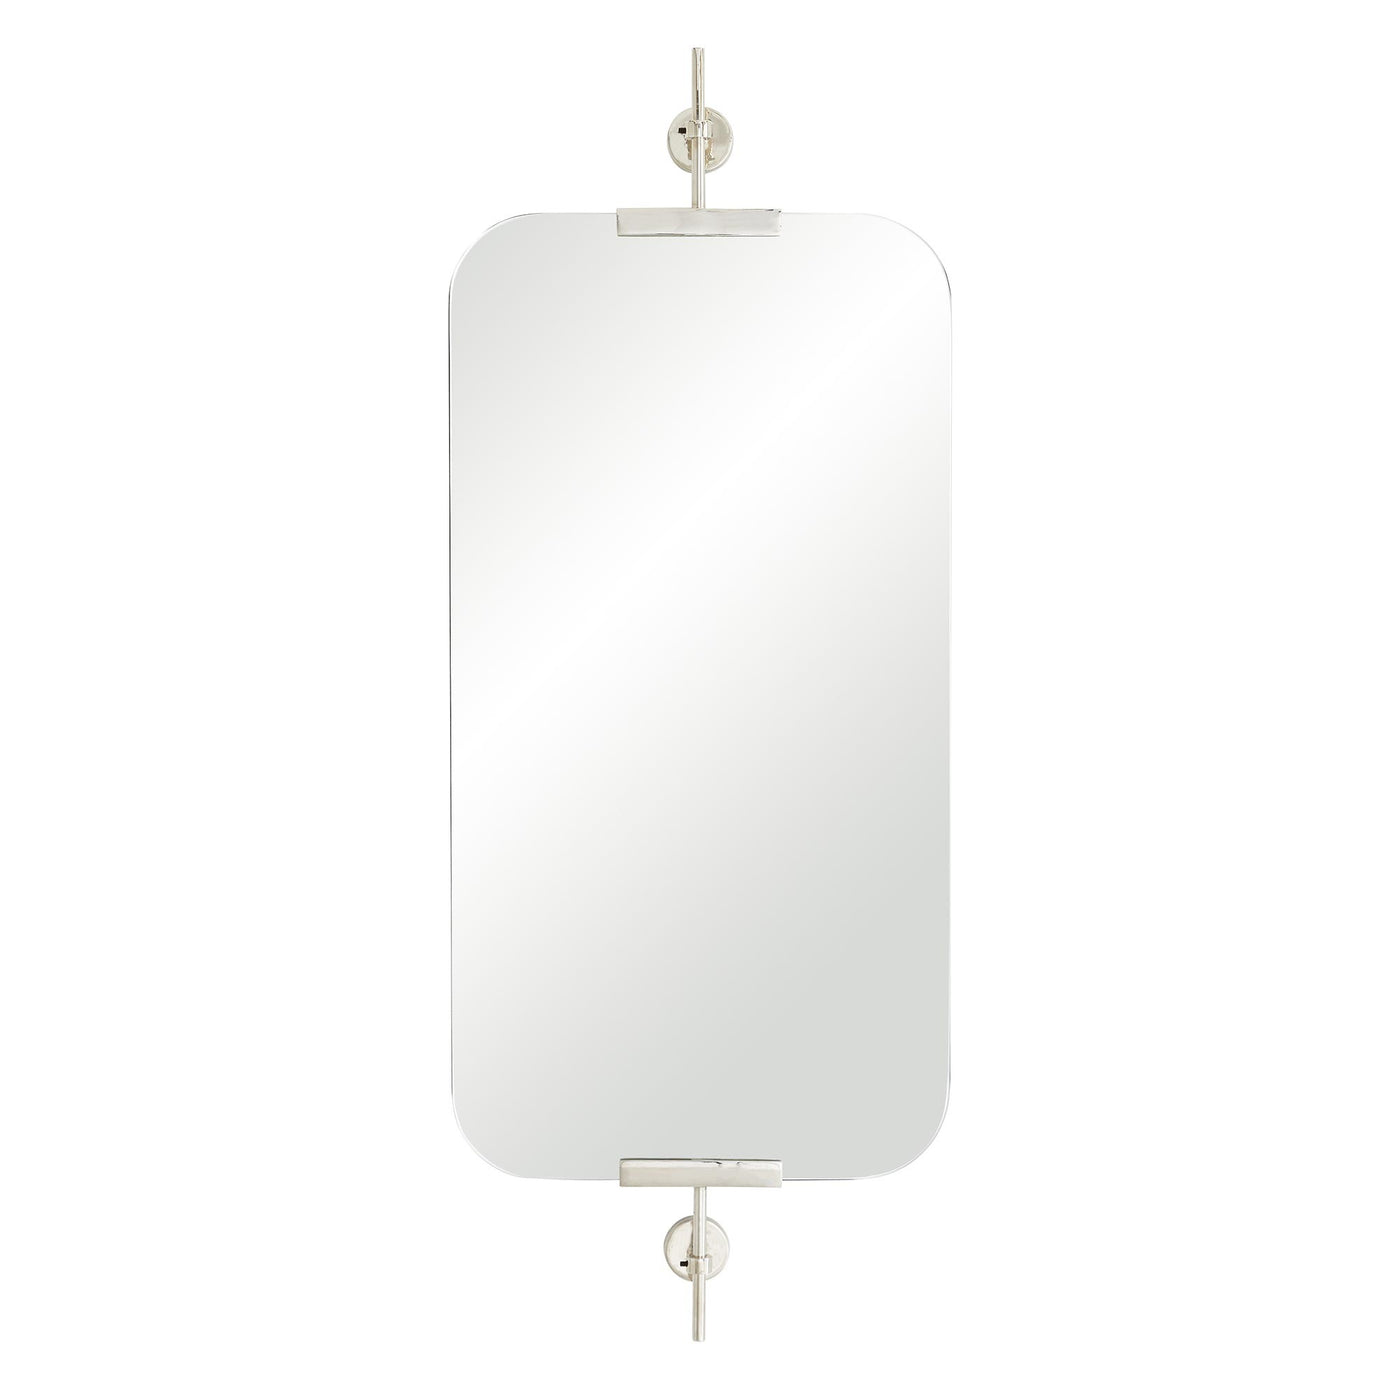 arteriors home madden mirror polished nickel